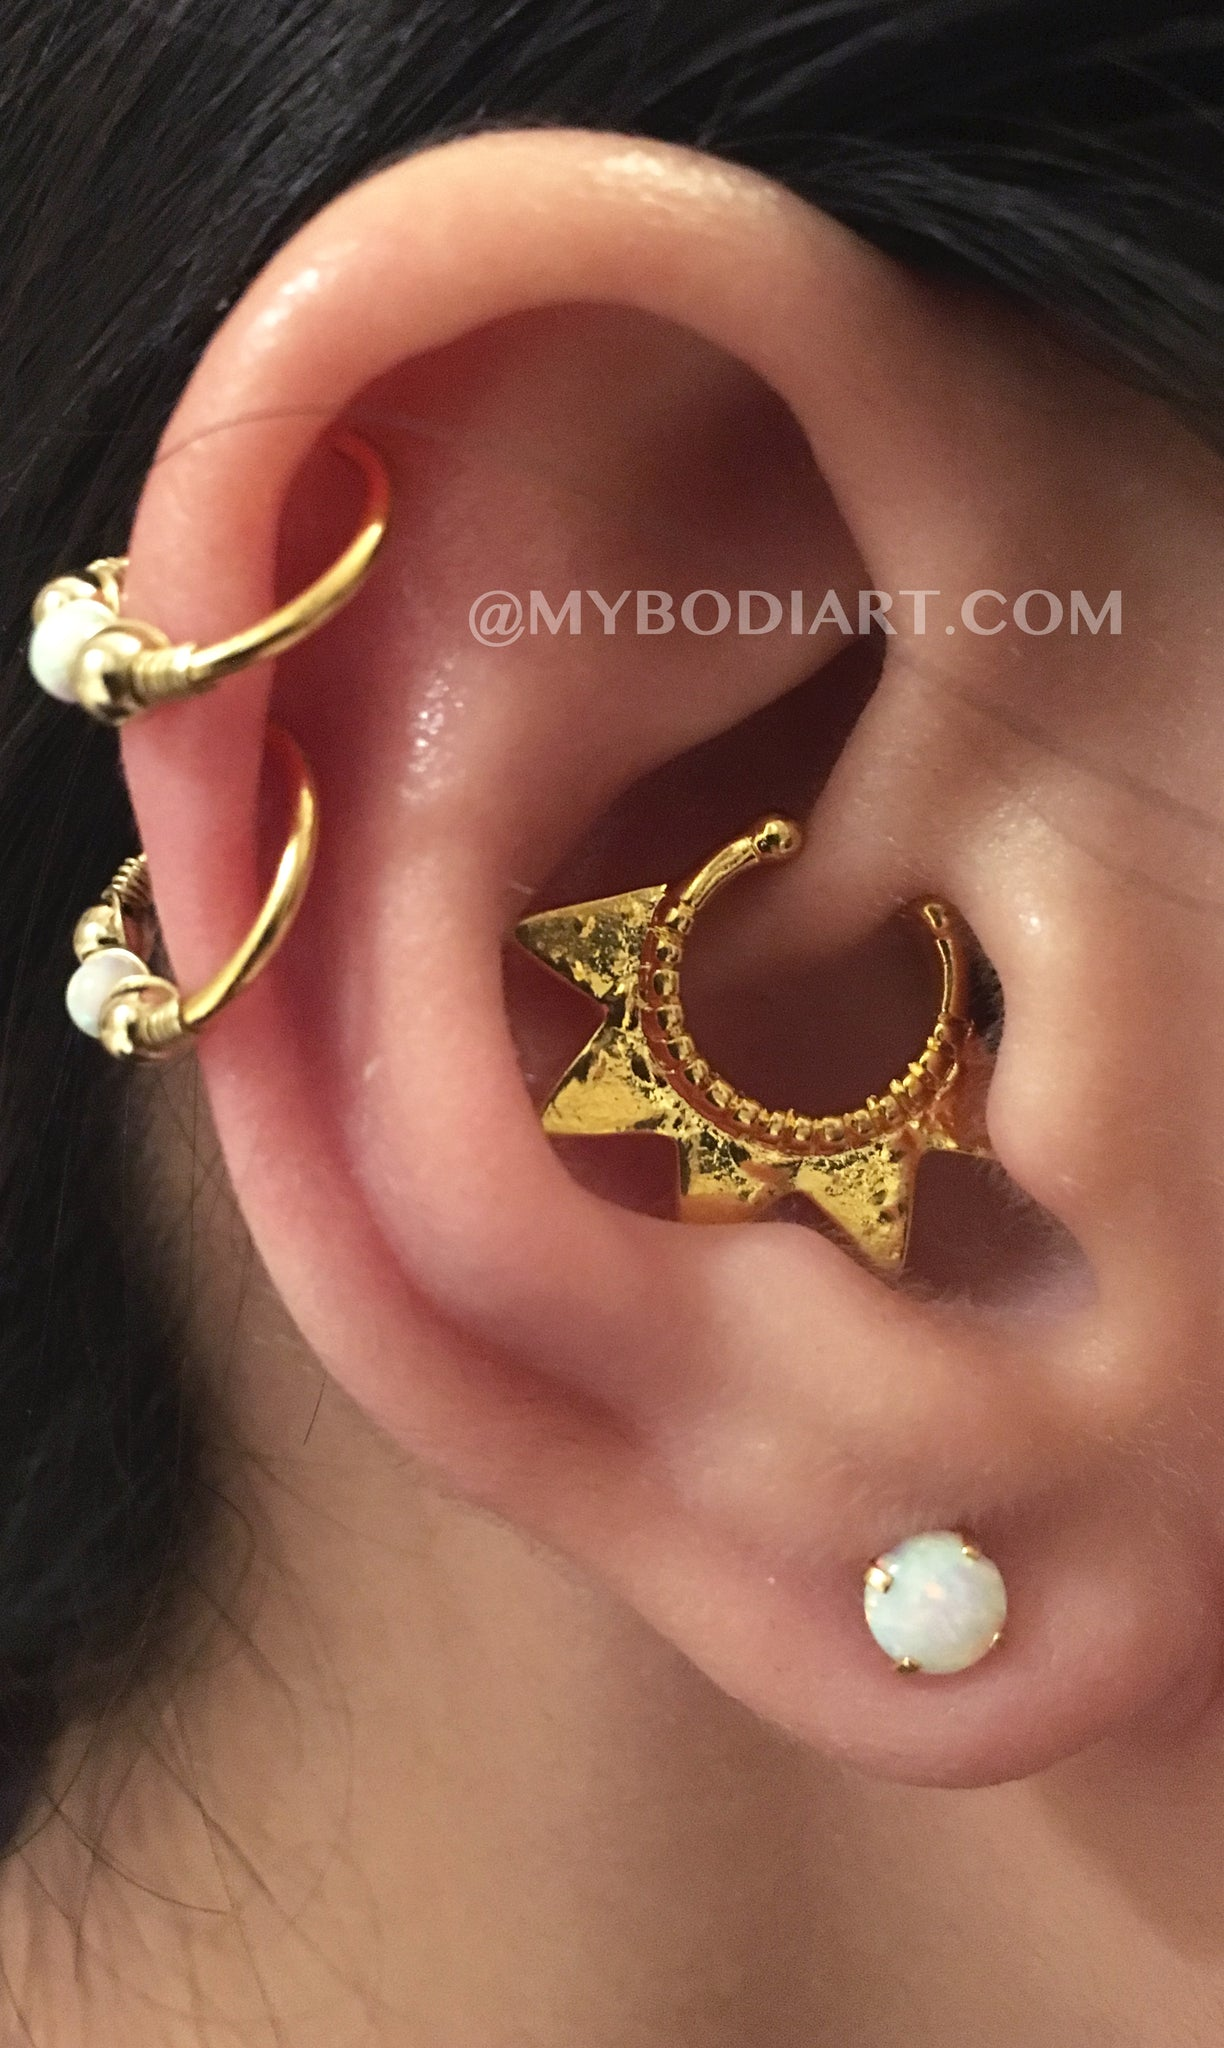 la perforación del oído - Badass Ear Piercing Ideas - Double Cartilage Ring Hoop - Opal Lobe Earring Studs - www.MyBodiArt.com